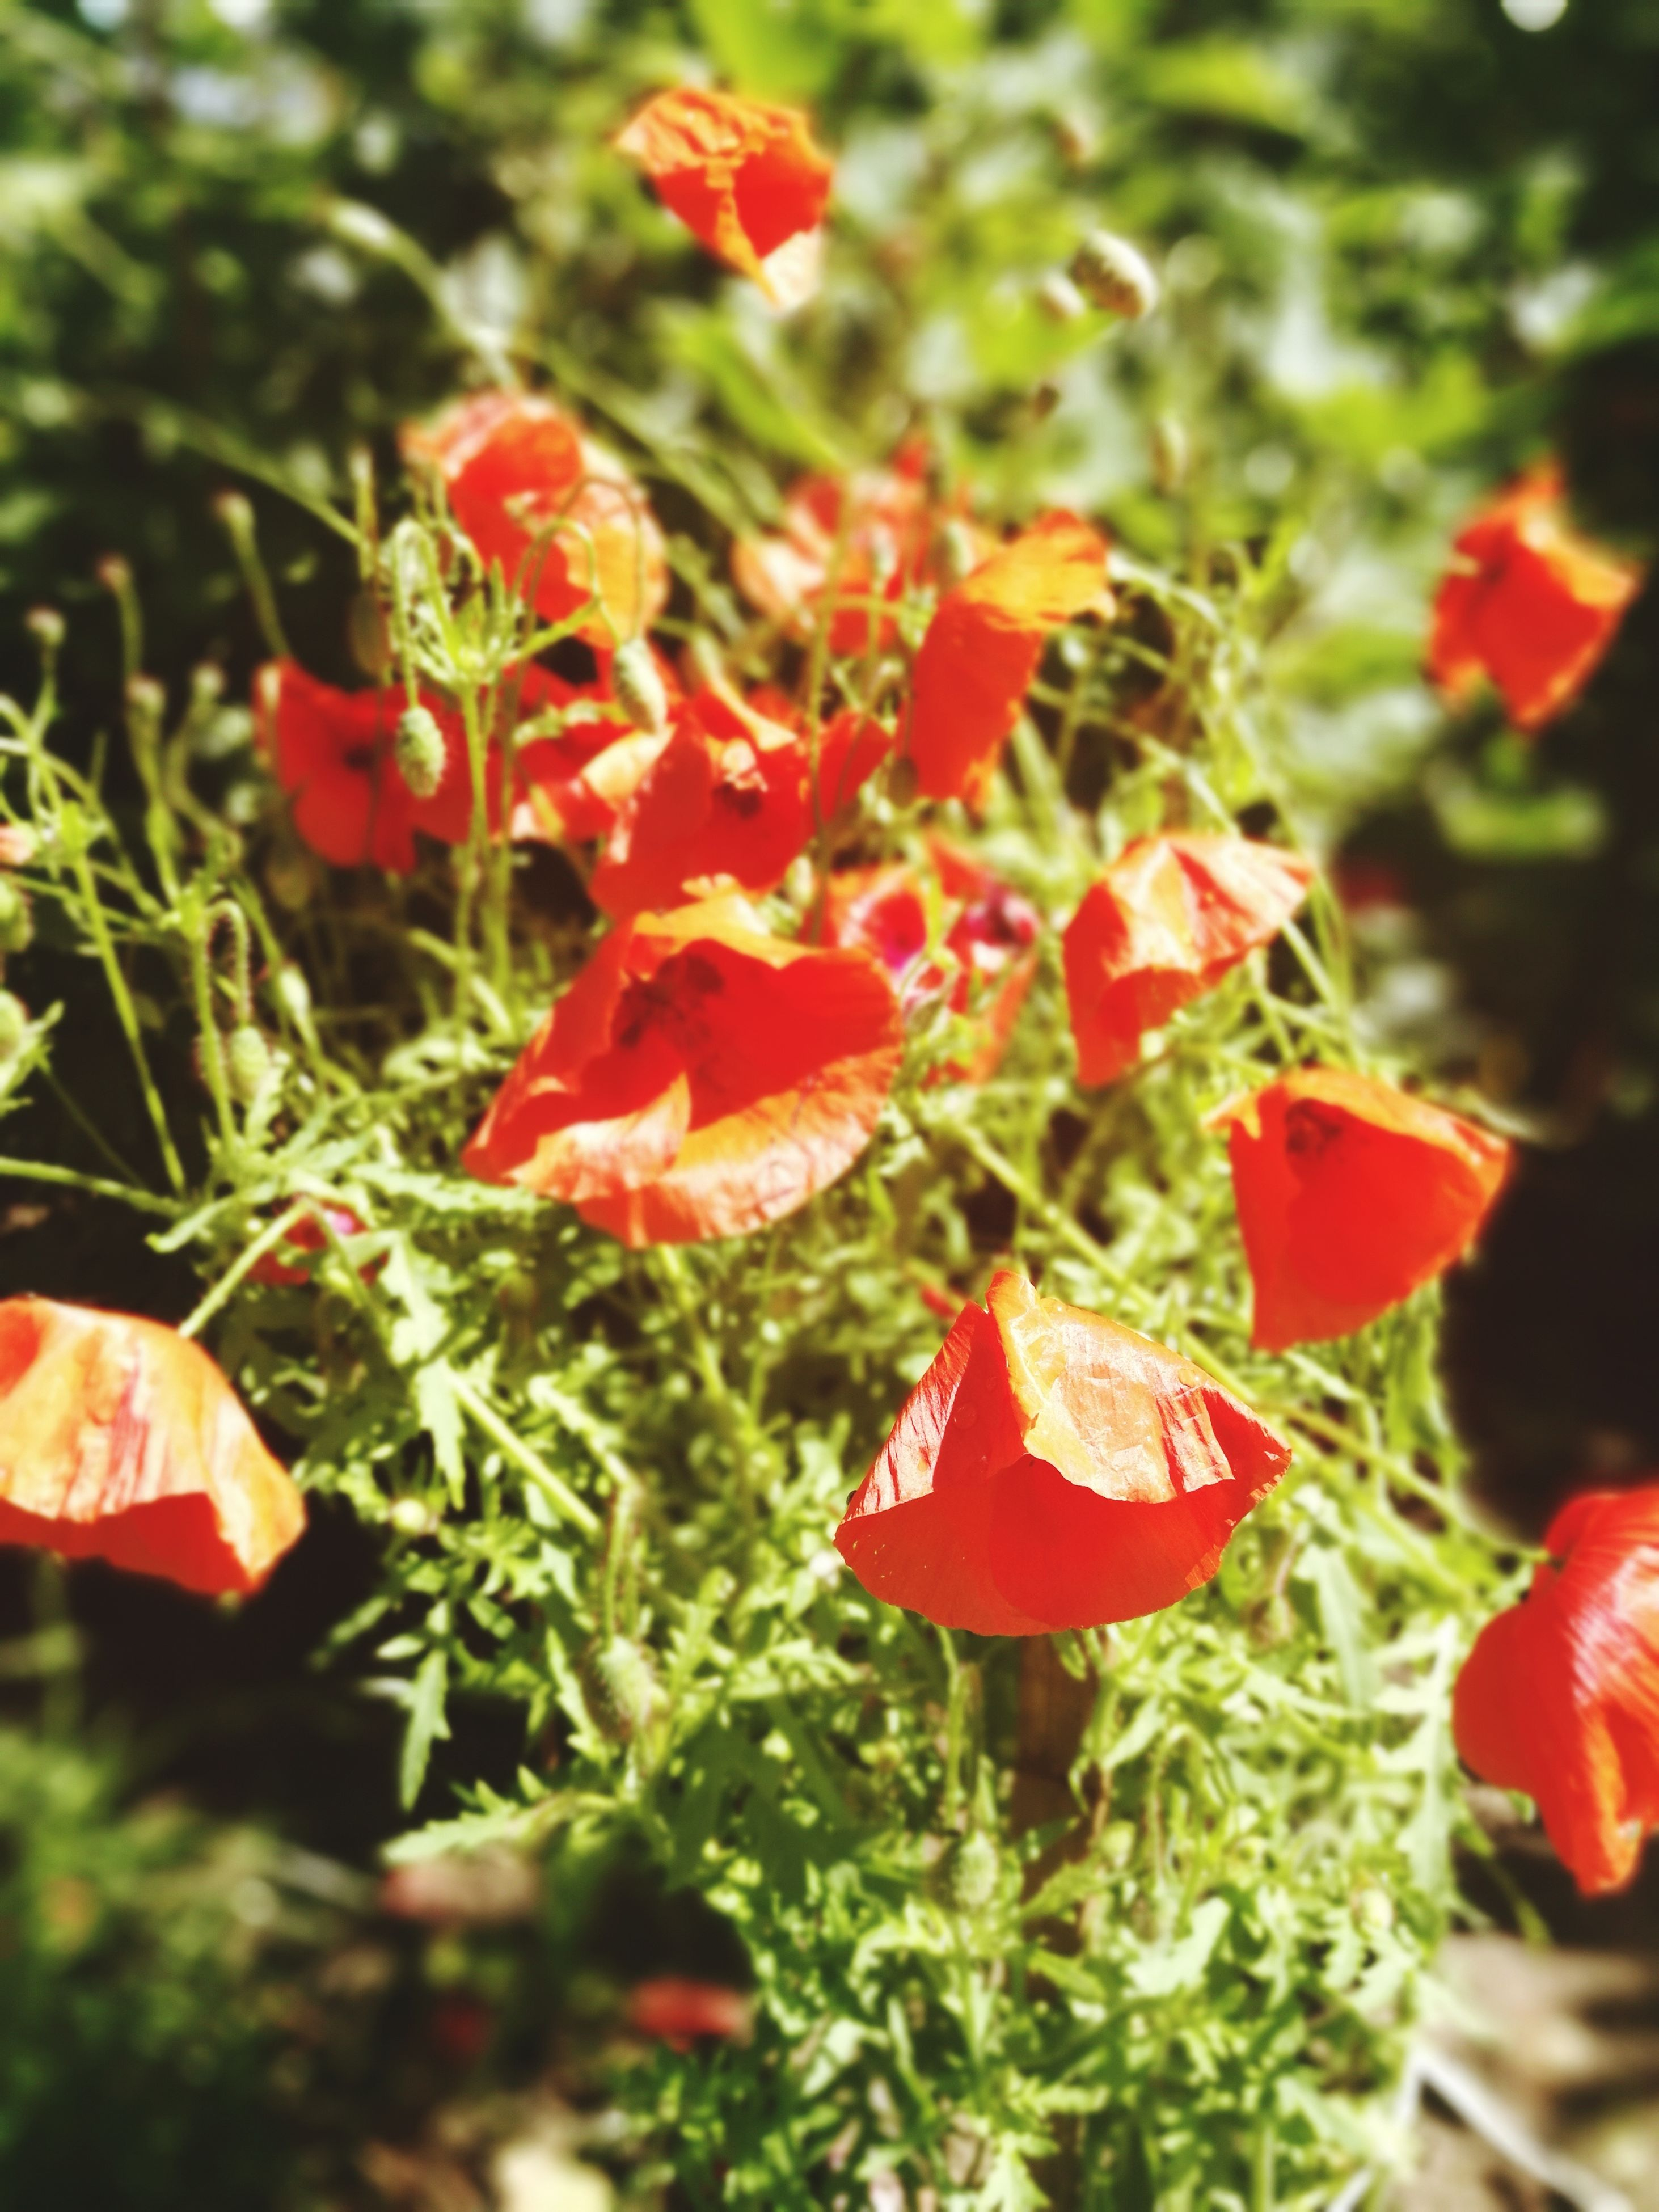 growth, beauty in nature, nature, red, plant, no people, outdoors, day, freshness, close-up, fragility, flower